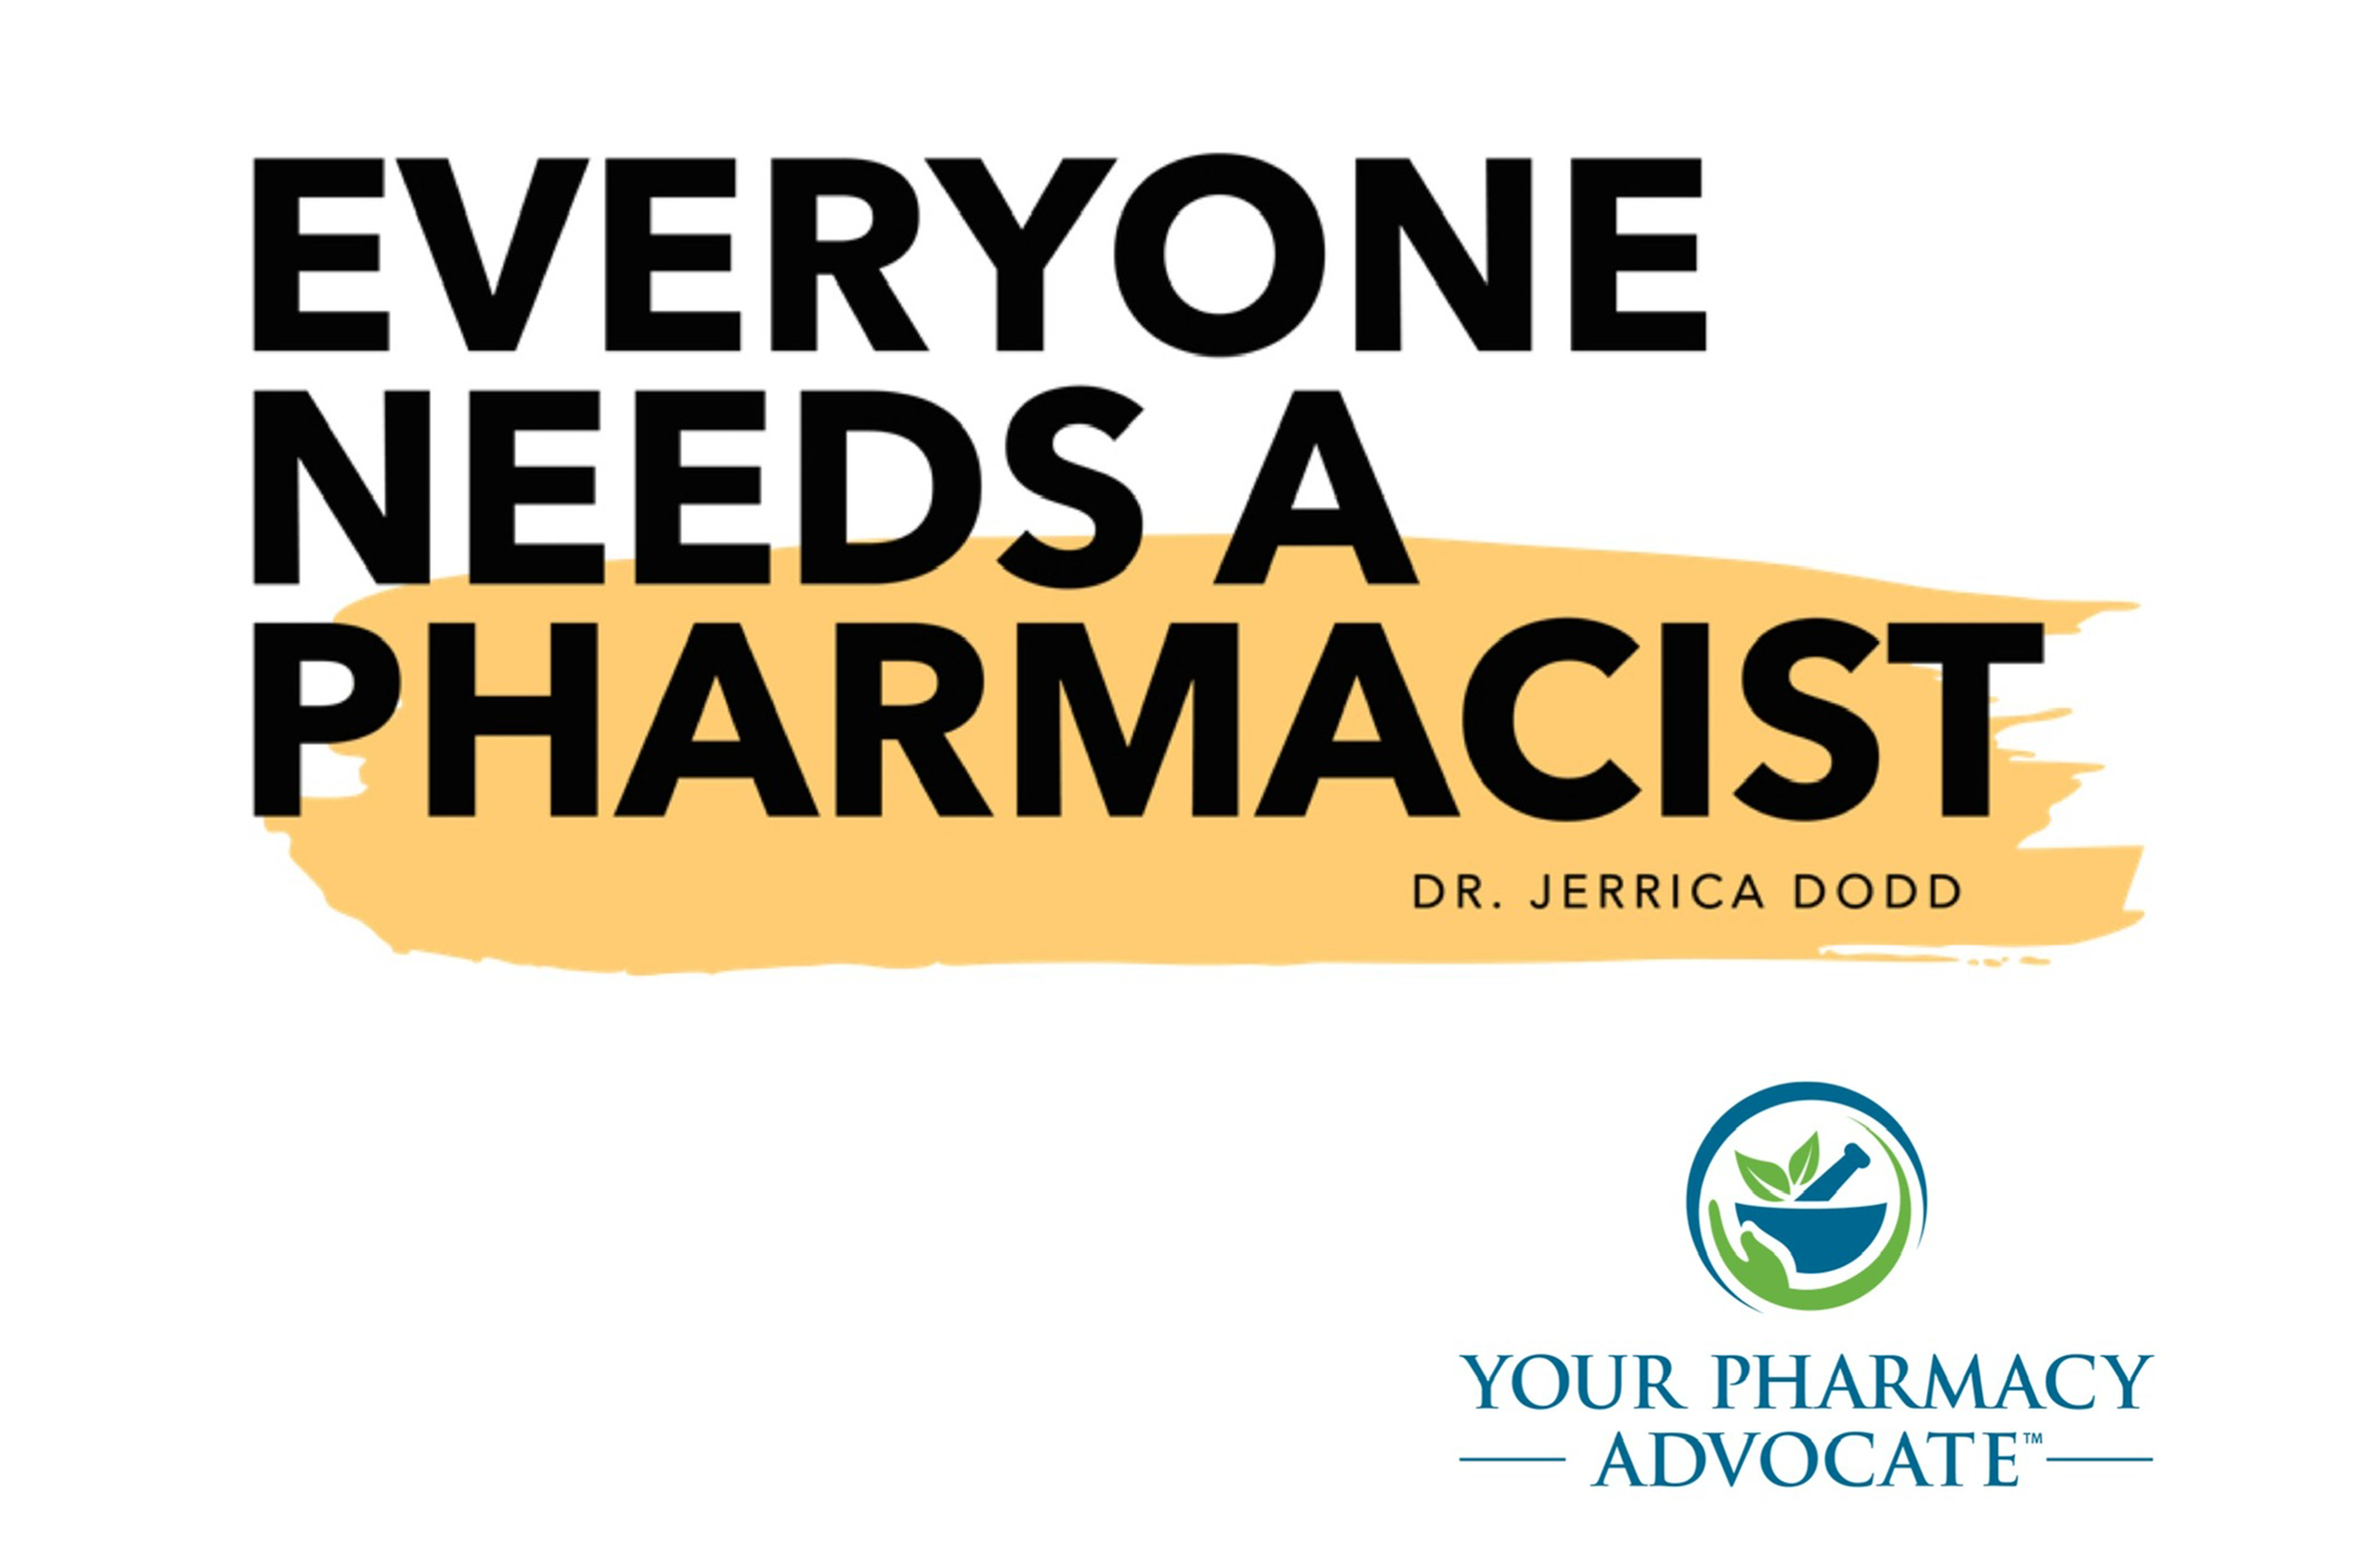 your pharmacy advocate